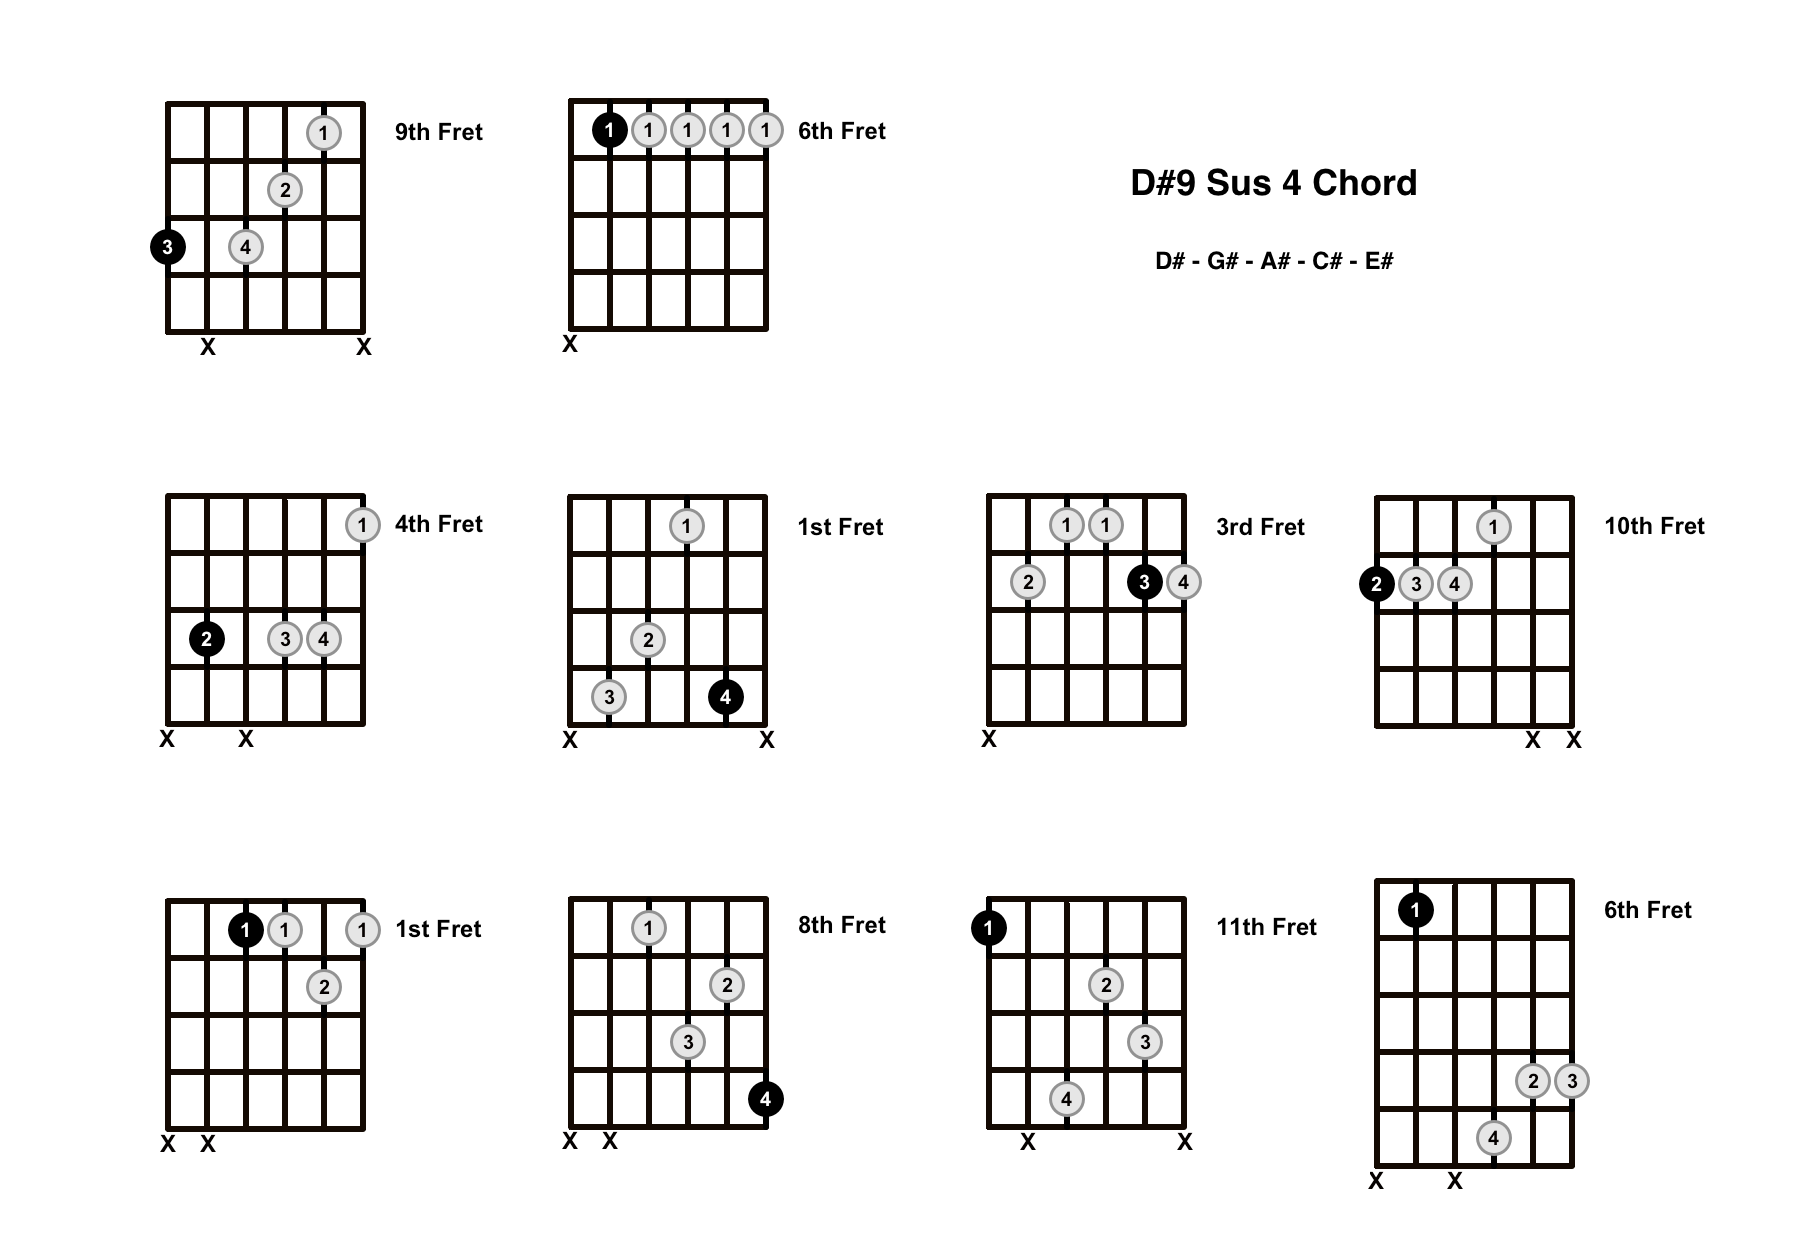 D#9 Sus 4 Chord On The Guitar (D Sharp 9 Suspended 4, C#/D#) – Diagrams, Finger Positions and Theory